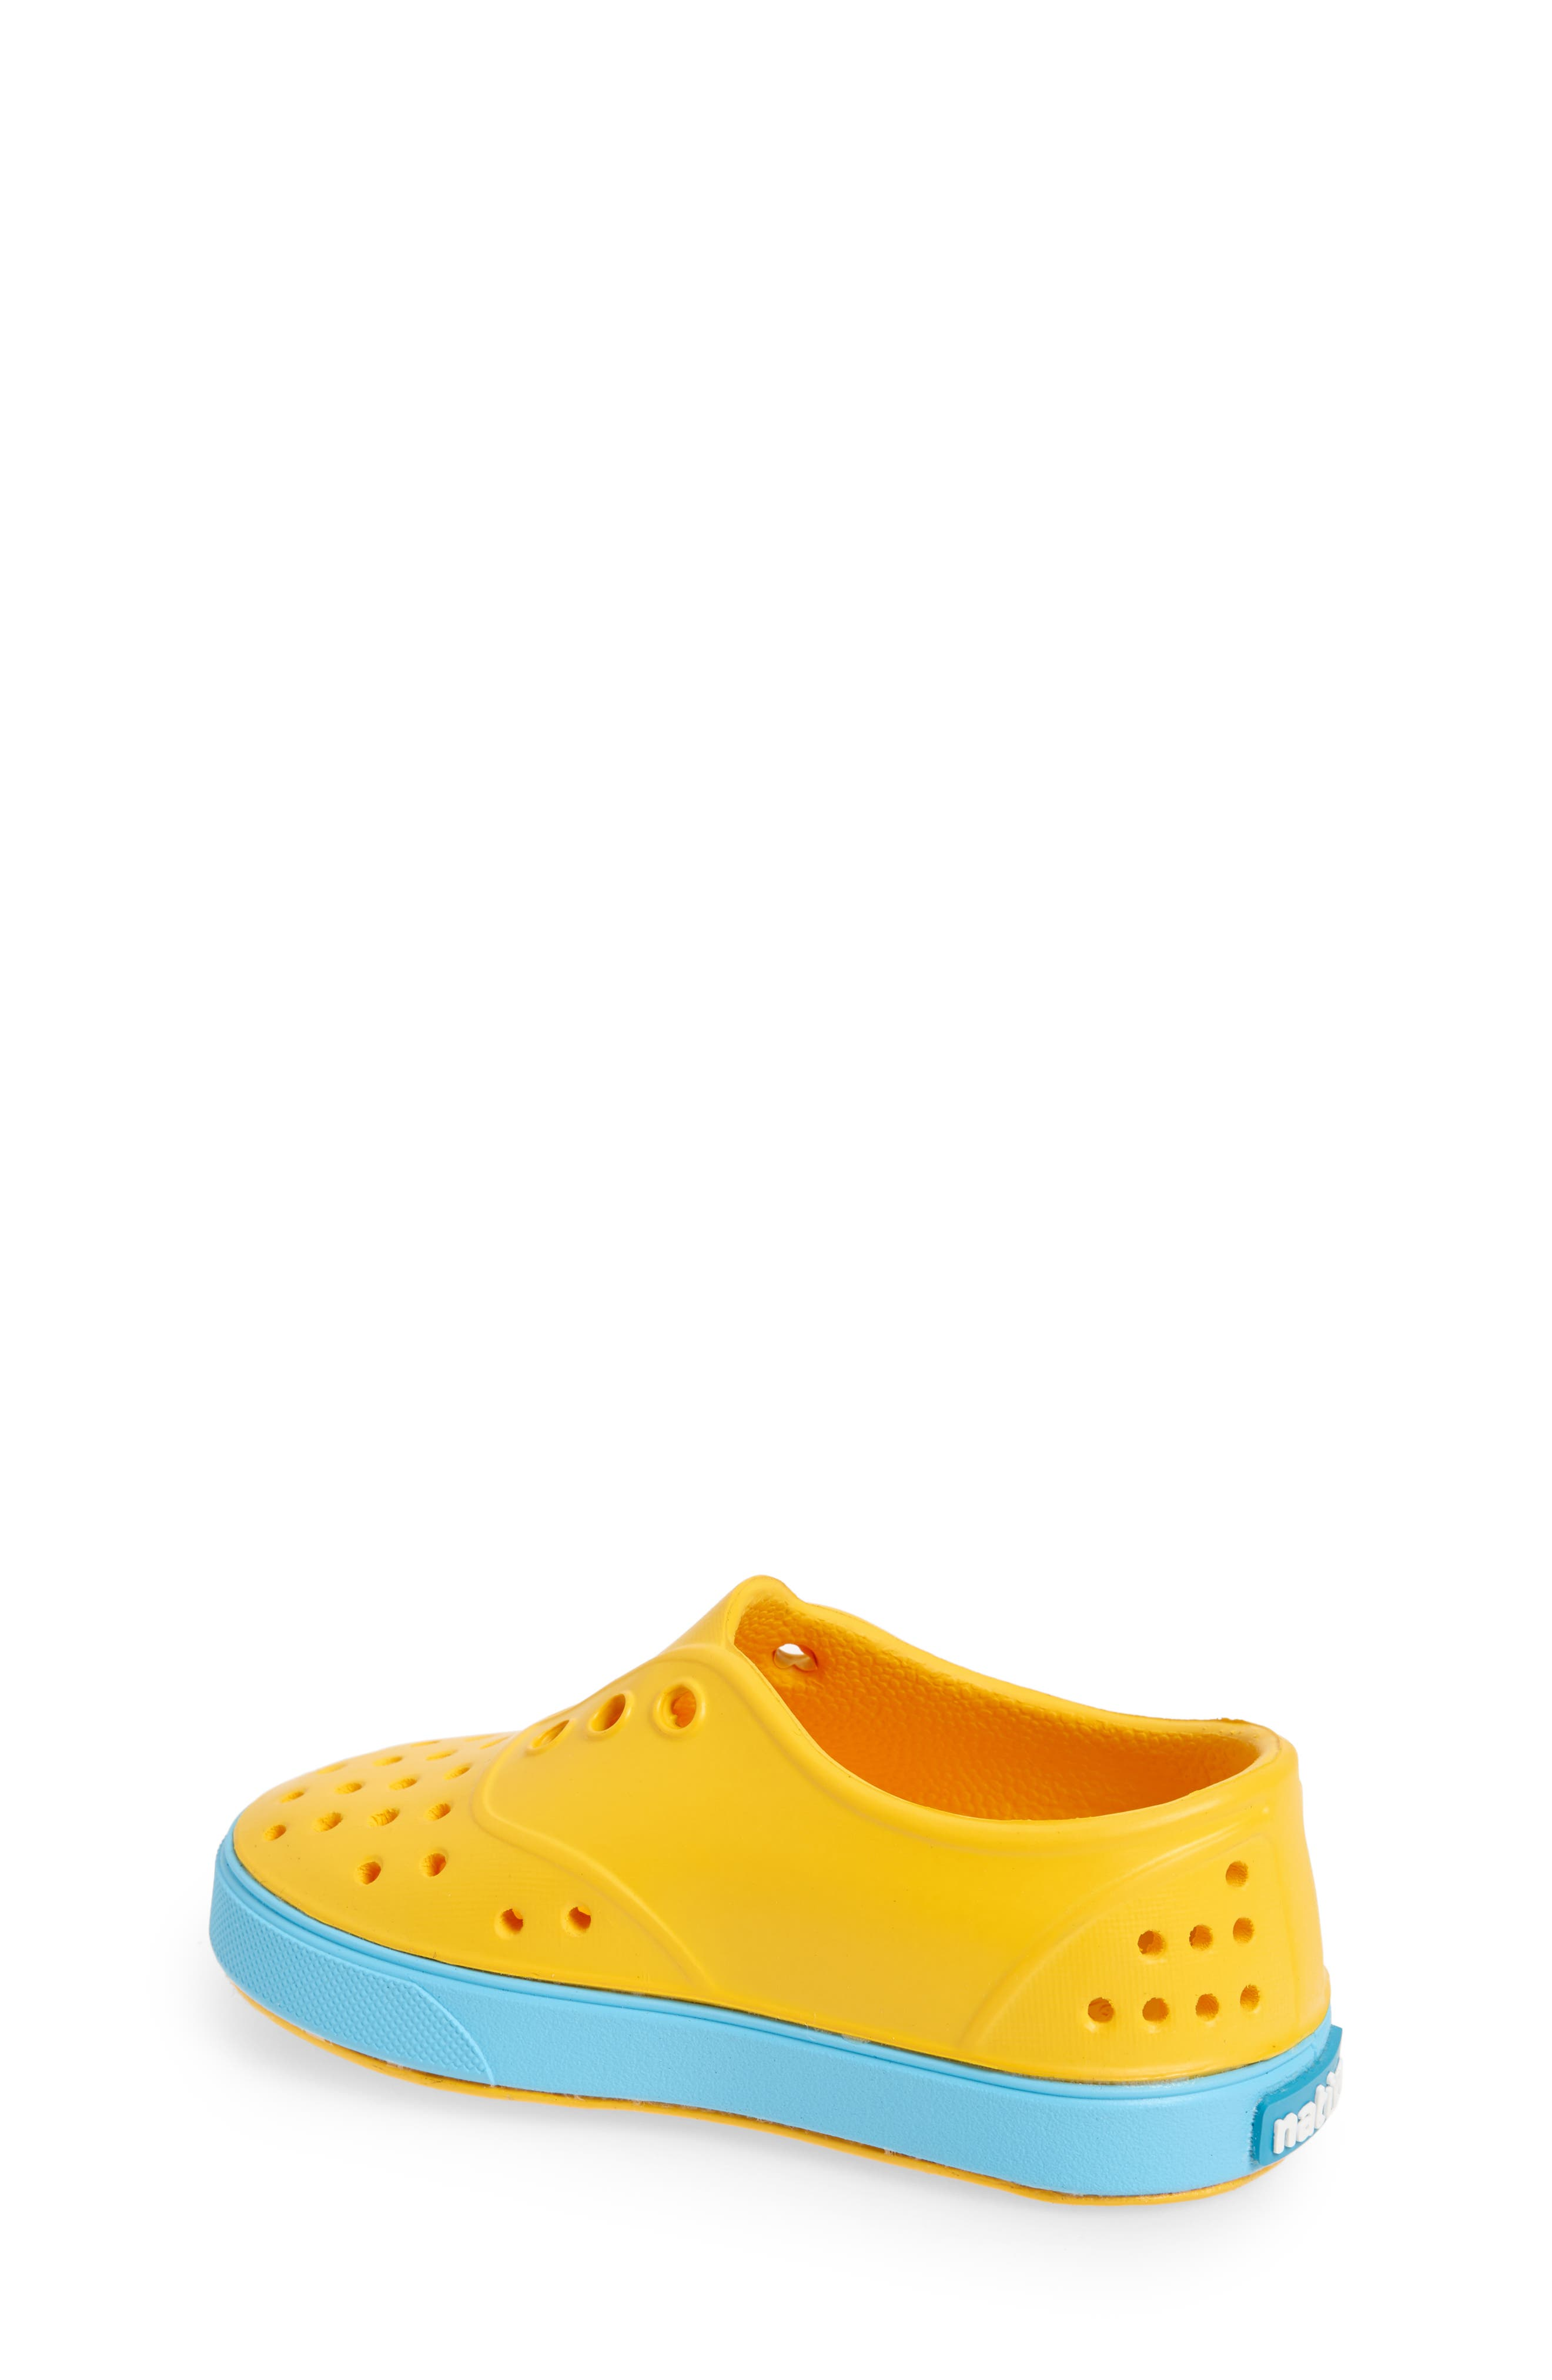 Miller Water Friendly Slip-On Sneaker,                             Alternate thumbnail 2, color,                             Yellow/ Surfer Blue